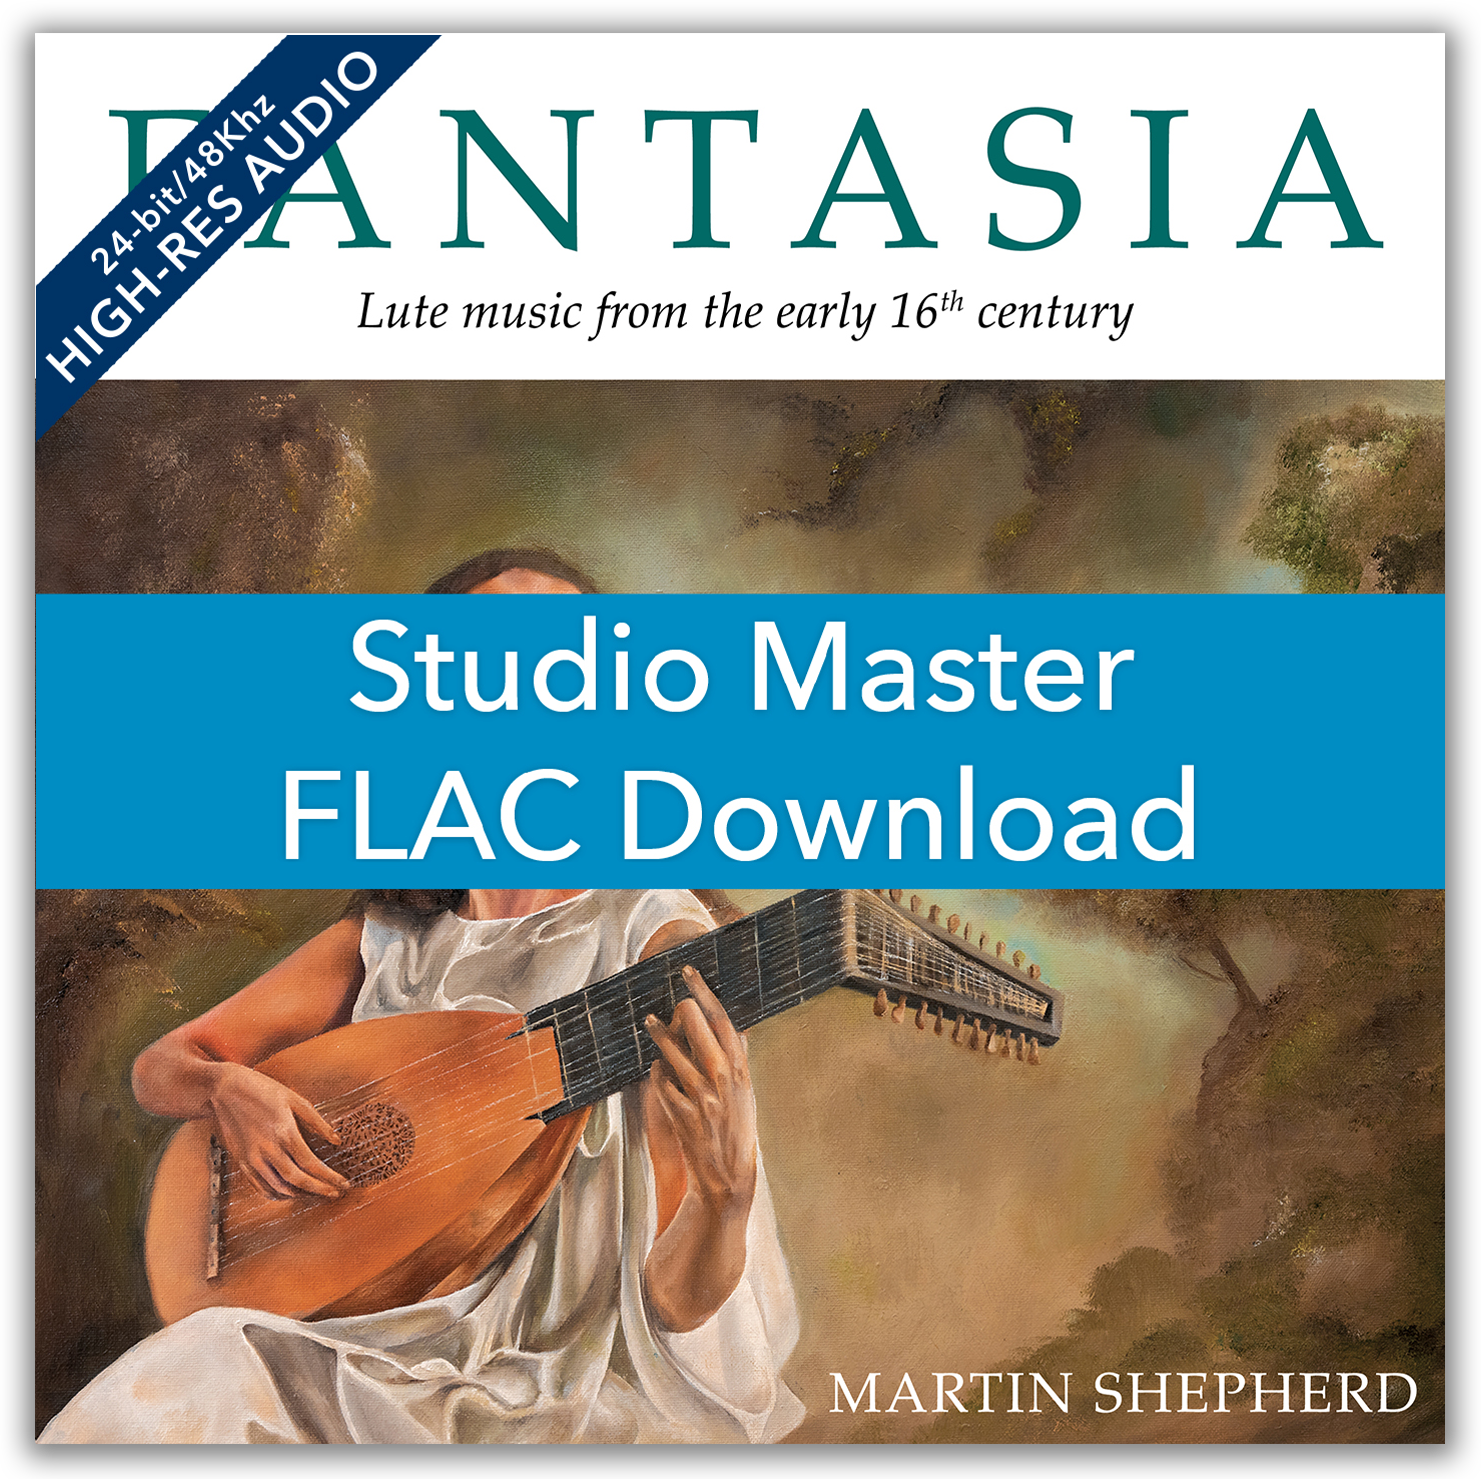 Fantasia: Lute music from the early 16th century [FLAC]